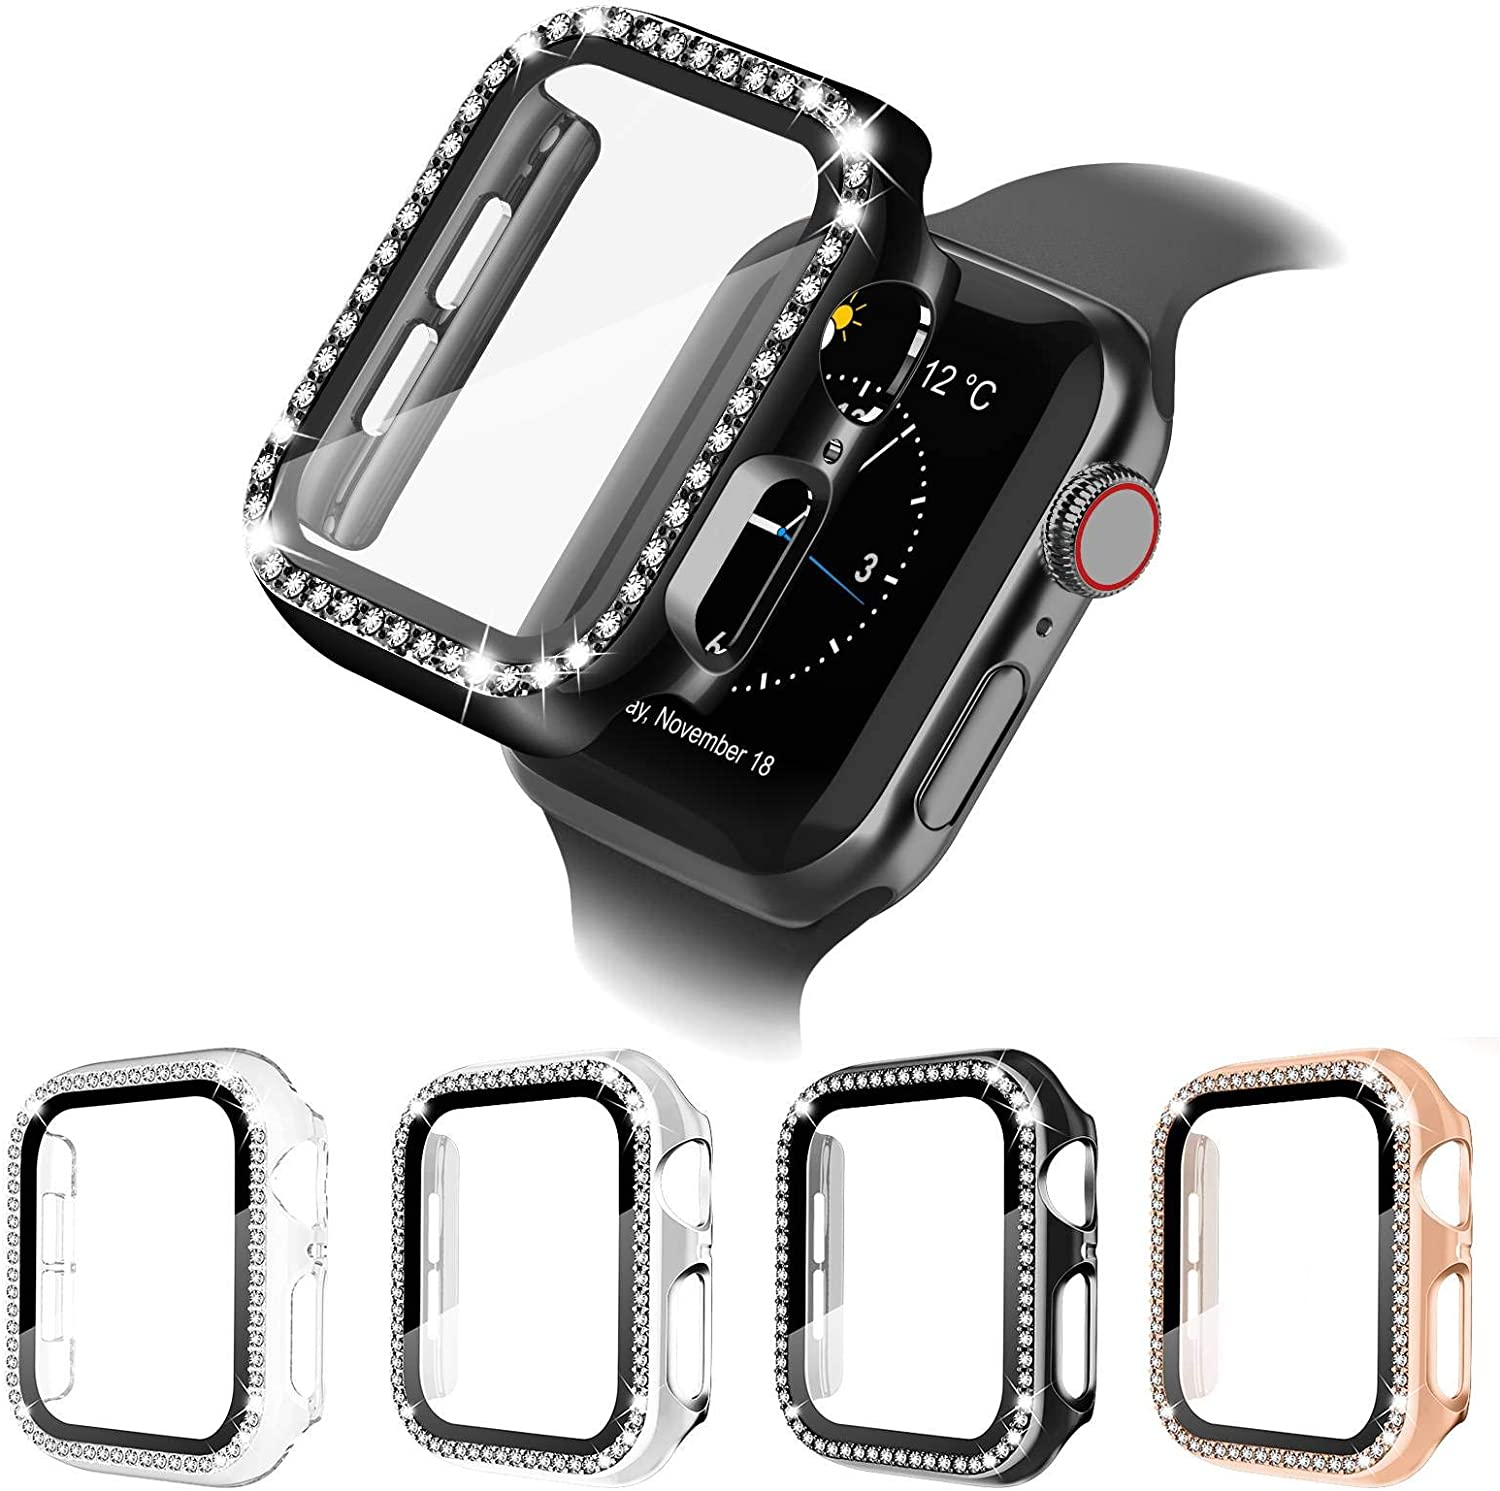 4 Pack Apple Watch Case with HD Tempered Glass Screen Protector for iWatch Series 6/5/4/3/2/1/SE, Full Cover Bling Diamond Crystal Rhinestone Protective Case (Rose Gold/Black/Clear/Silver, 44mm)